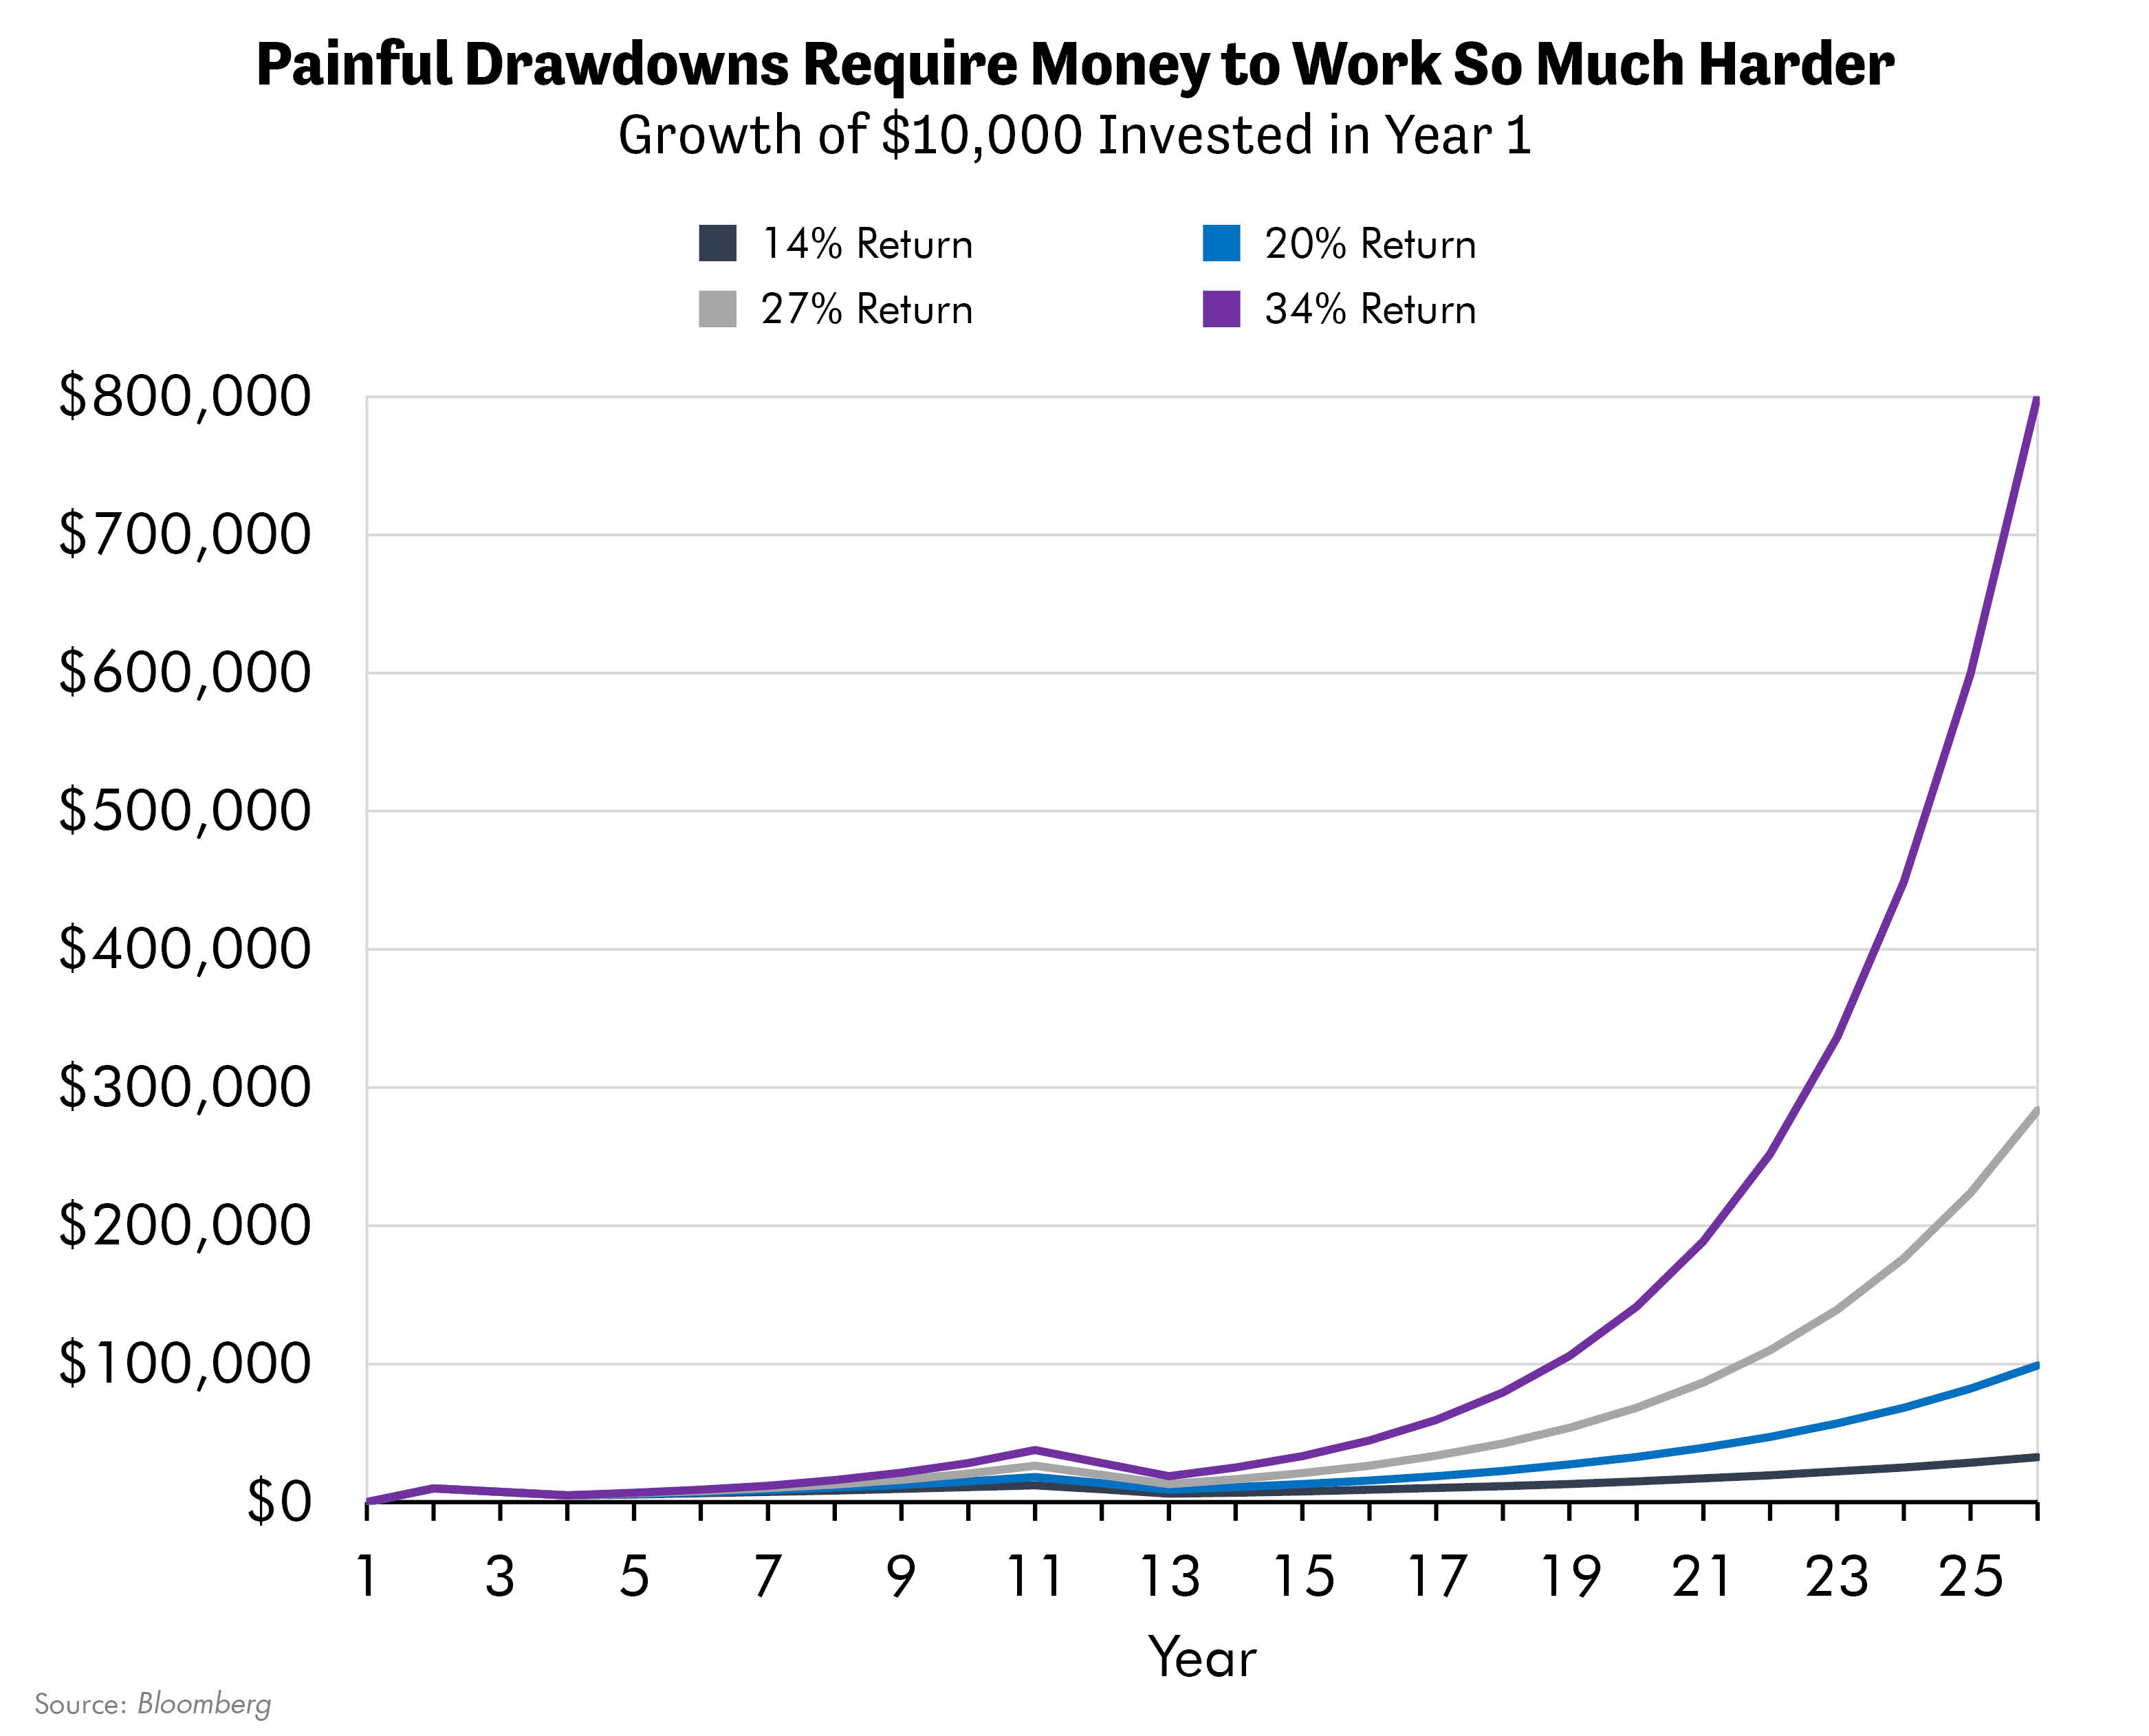 Painful Drawdowns Require Money to Work So Much Harder